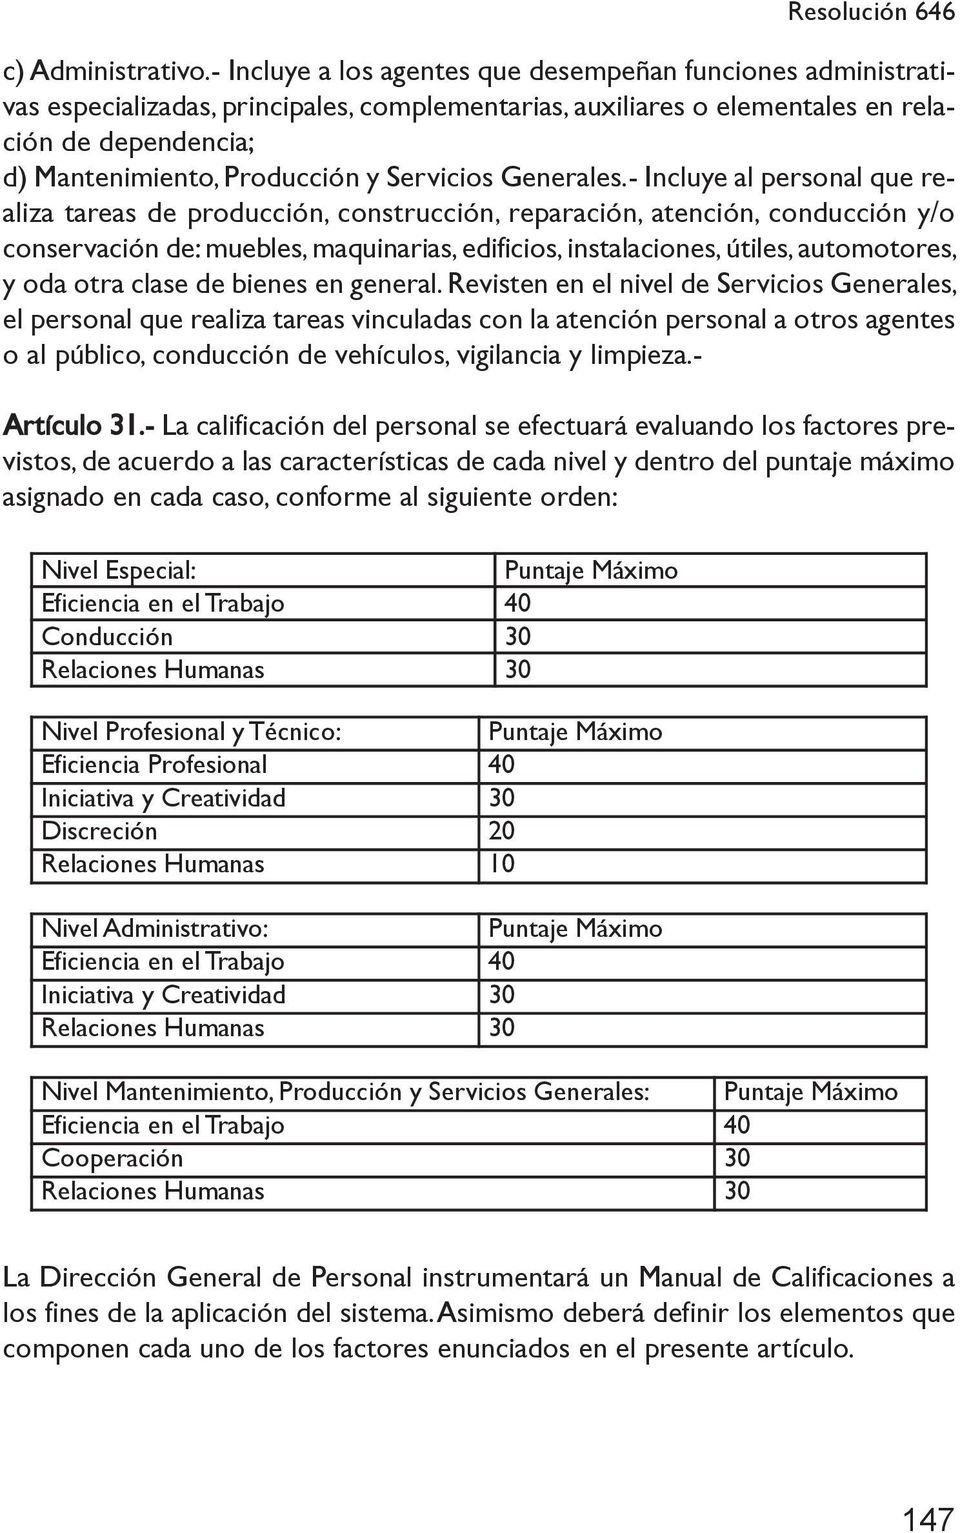 Texto modificado del decreto n 646 1 del 20 04 198 3 con for Manual de fabricacion de muebles de melamina en pdf